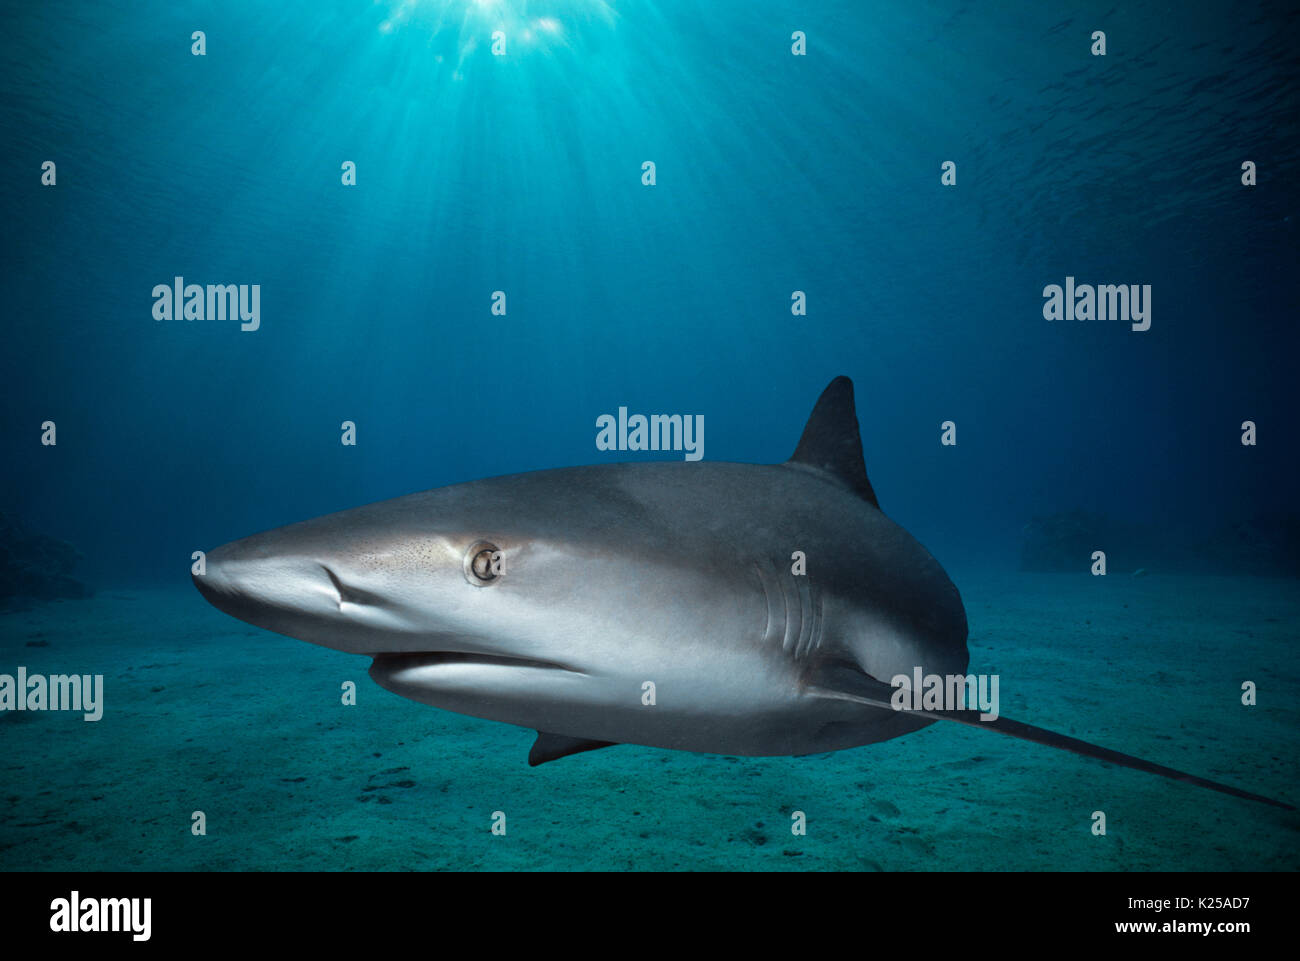 Caribbean Reef Shark (Carcharhinus perezi).  Bahamas, Caribbean Sea.  This image has been digitally altered to remove distracting or to add more inter - Stock Image